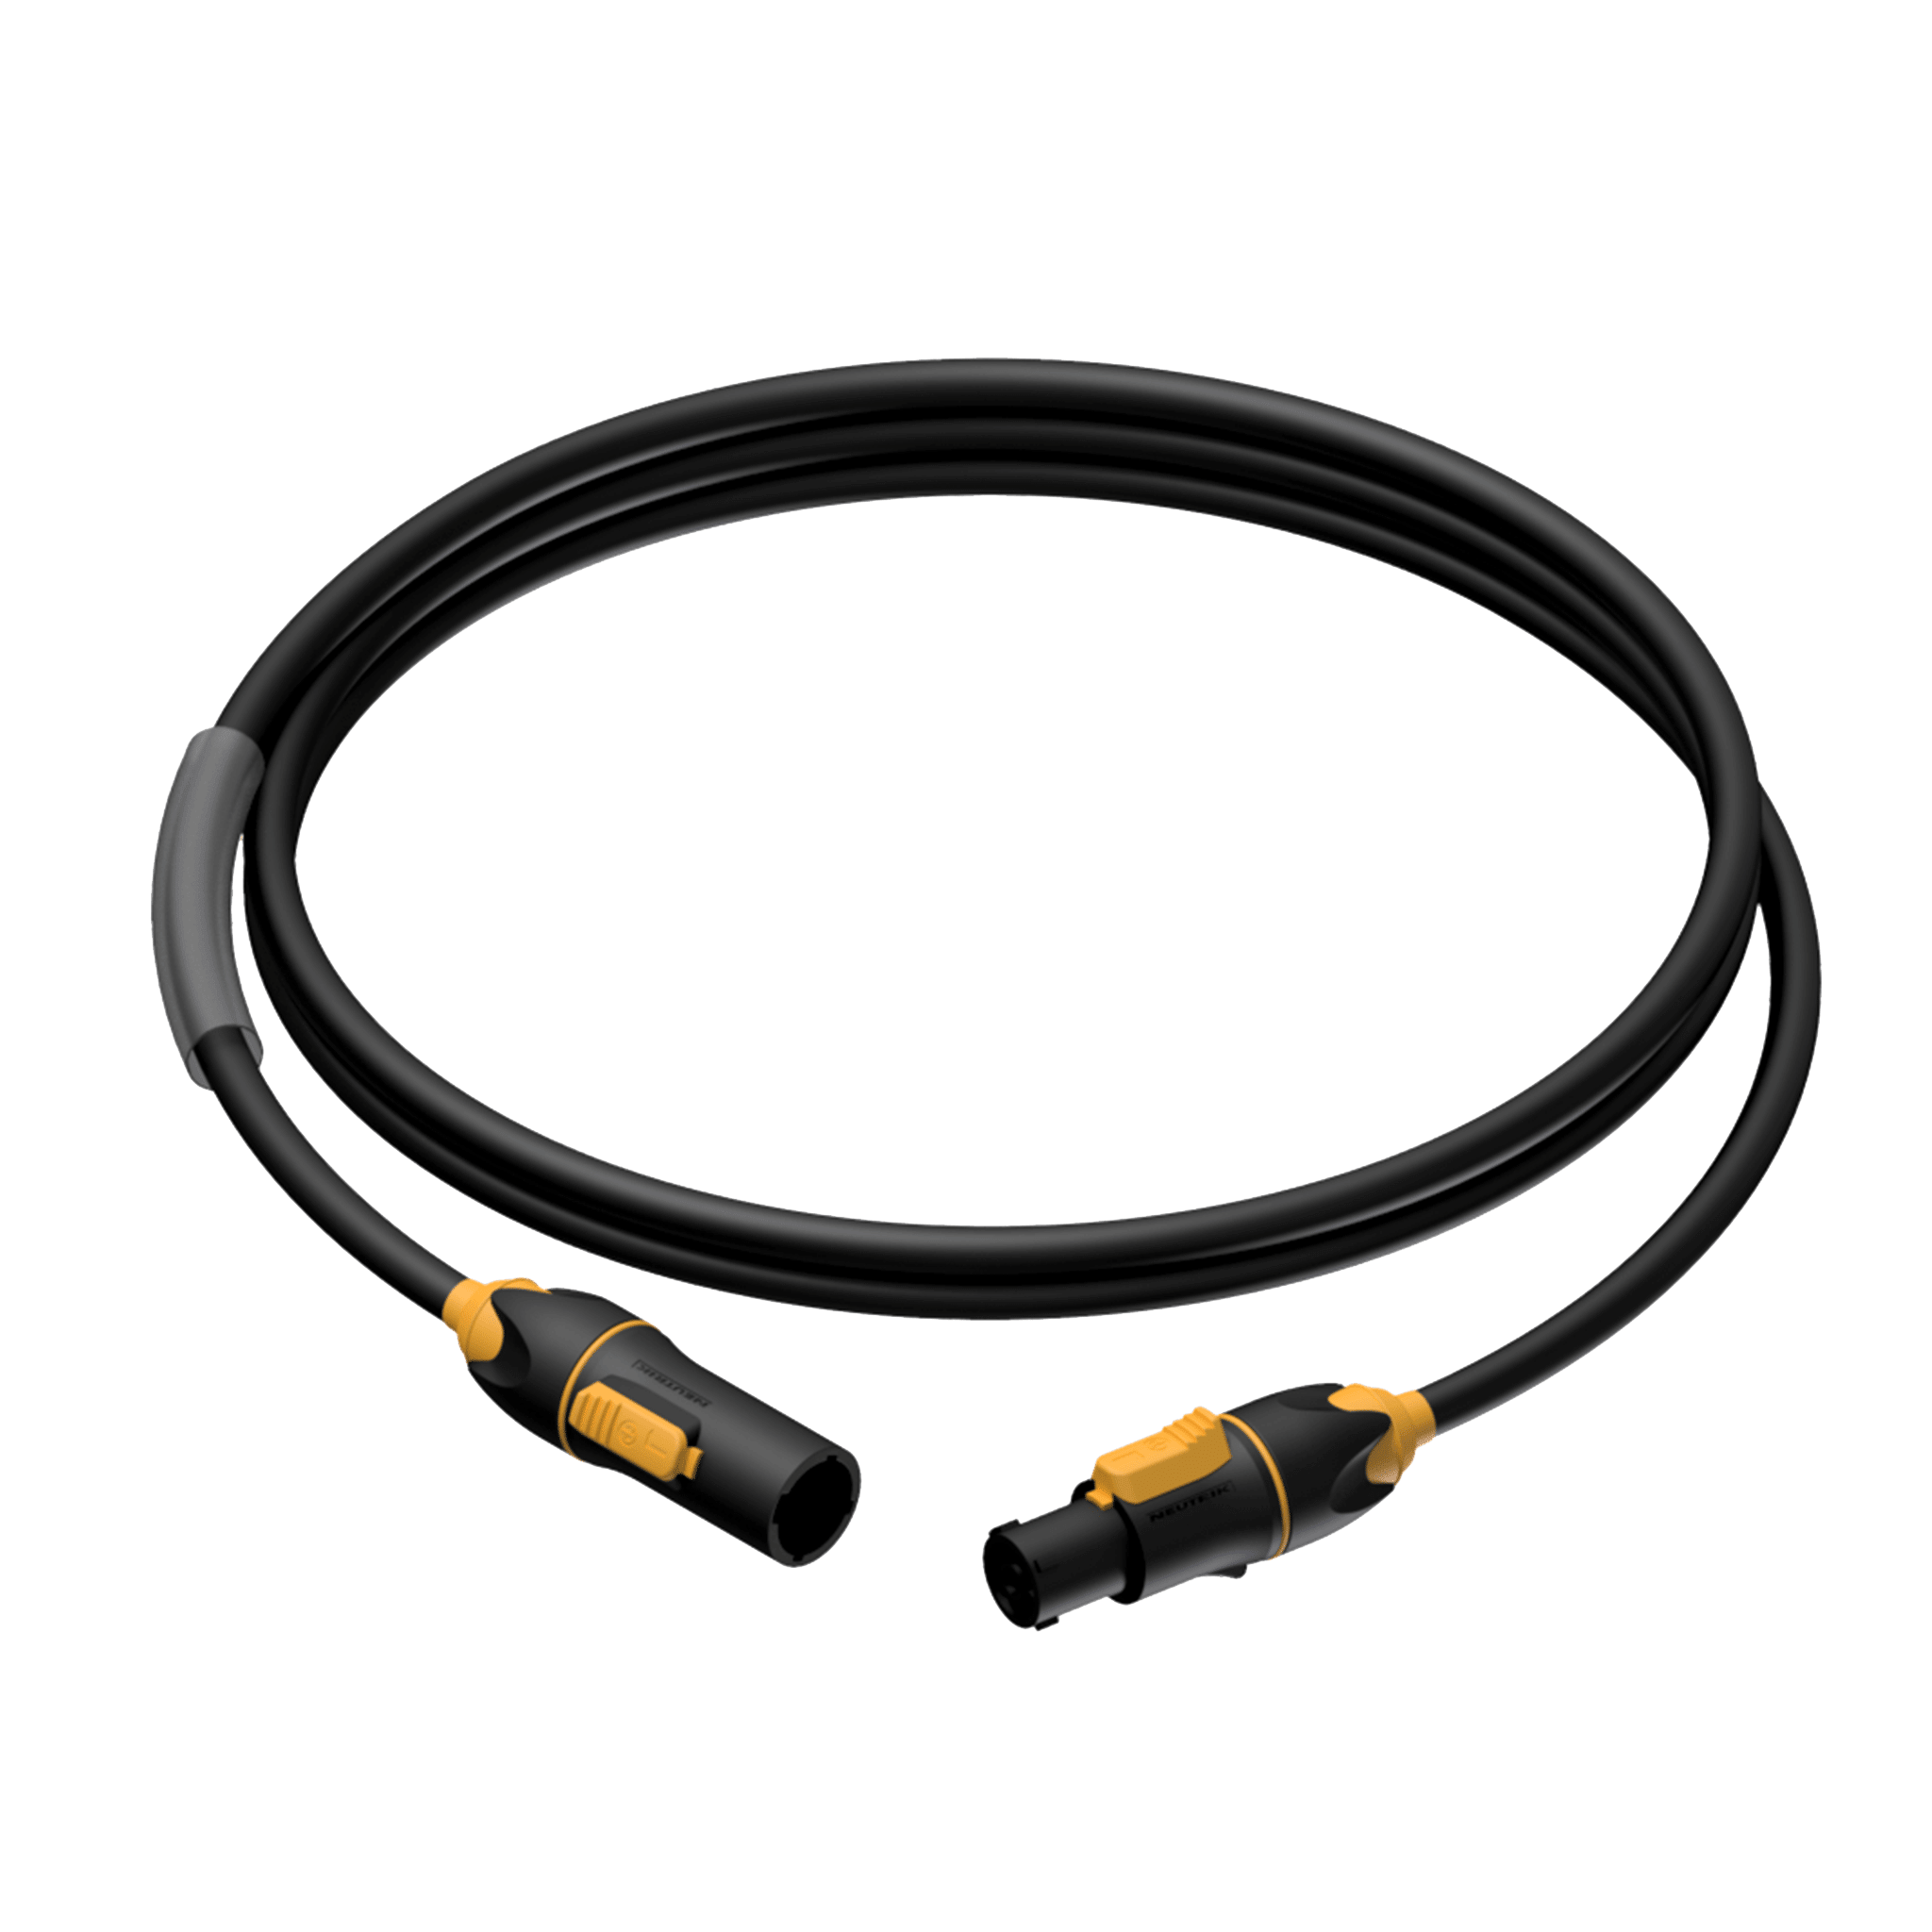 PRP435 - Power cable - powerCON TRUE1 male - powerCON TRUE1 female - 3 x 1.5 mm²